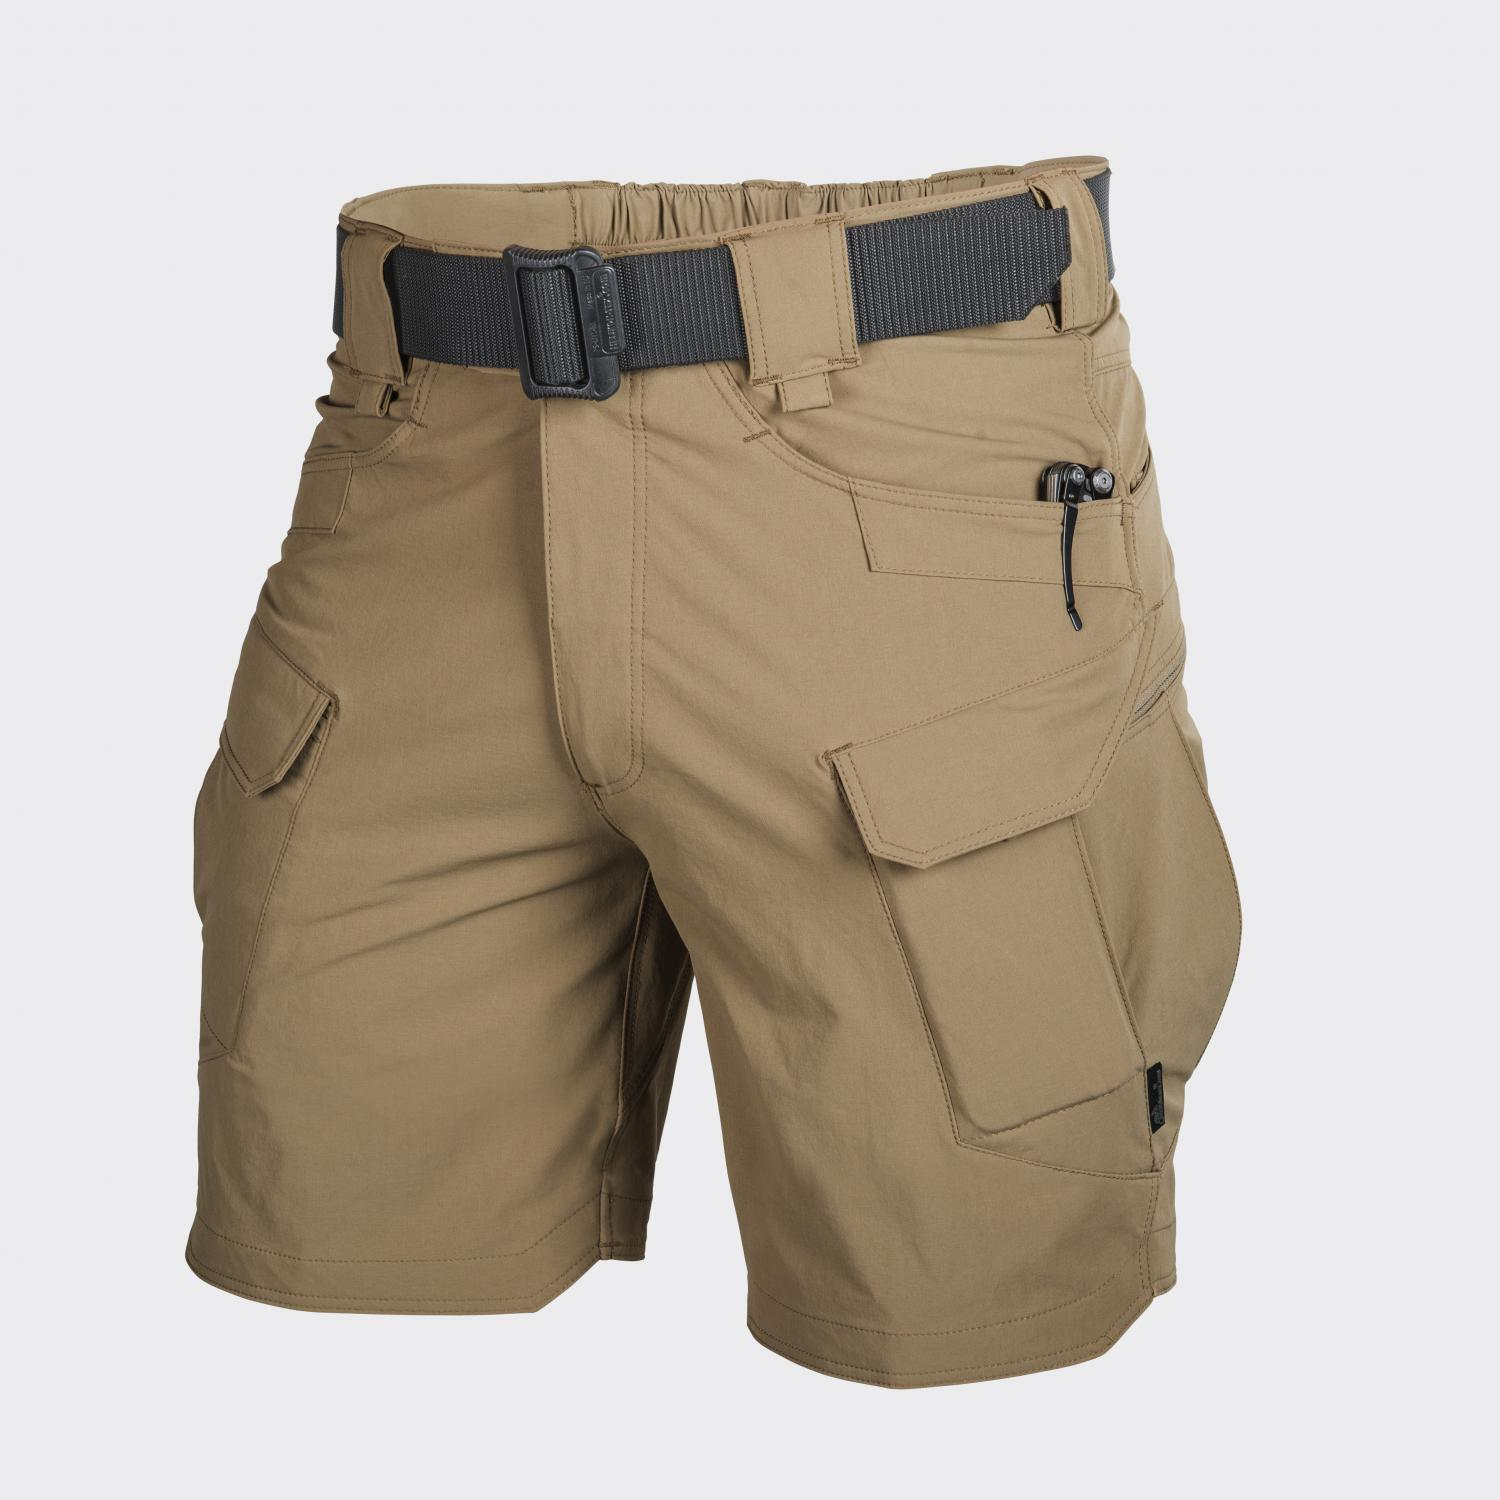 "OUTDOOR TACTICAL SHORTS 8.5"" - Nylon Mud Brown"